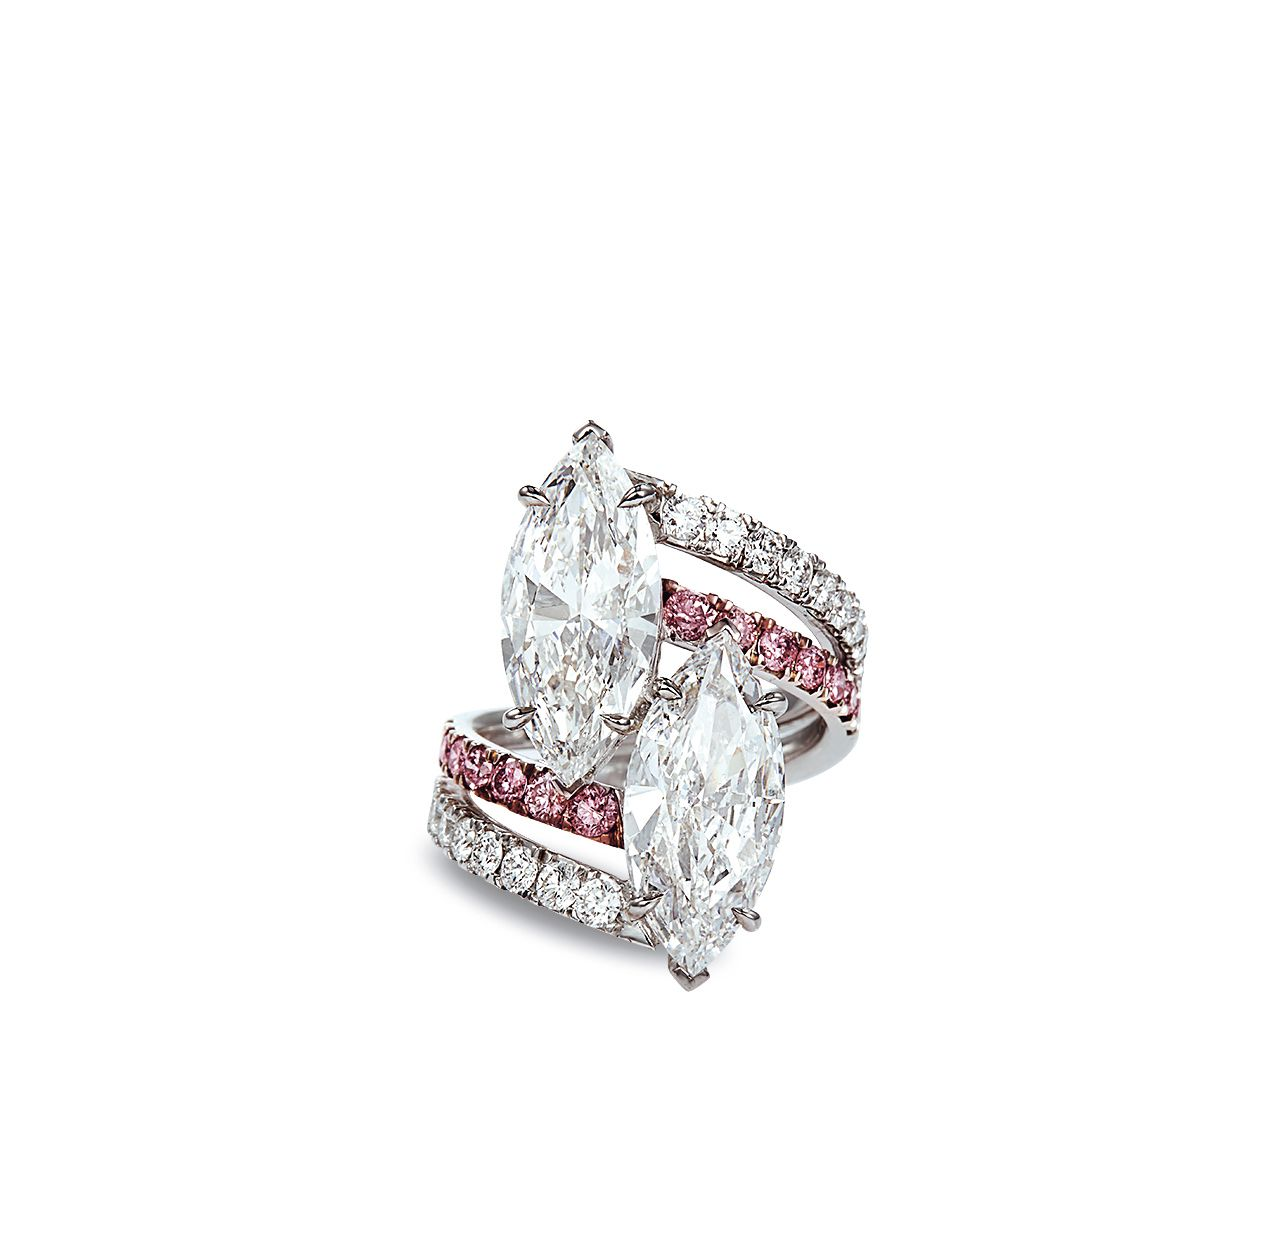 Of Crossover Design Claw Set With Two Marquisecut Diamonds Weighing Approximately 3 08 And 3 01 Carats To The Fashion Rings Pink Diamond Outstanding Jewelry